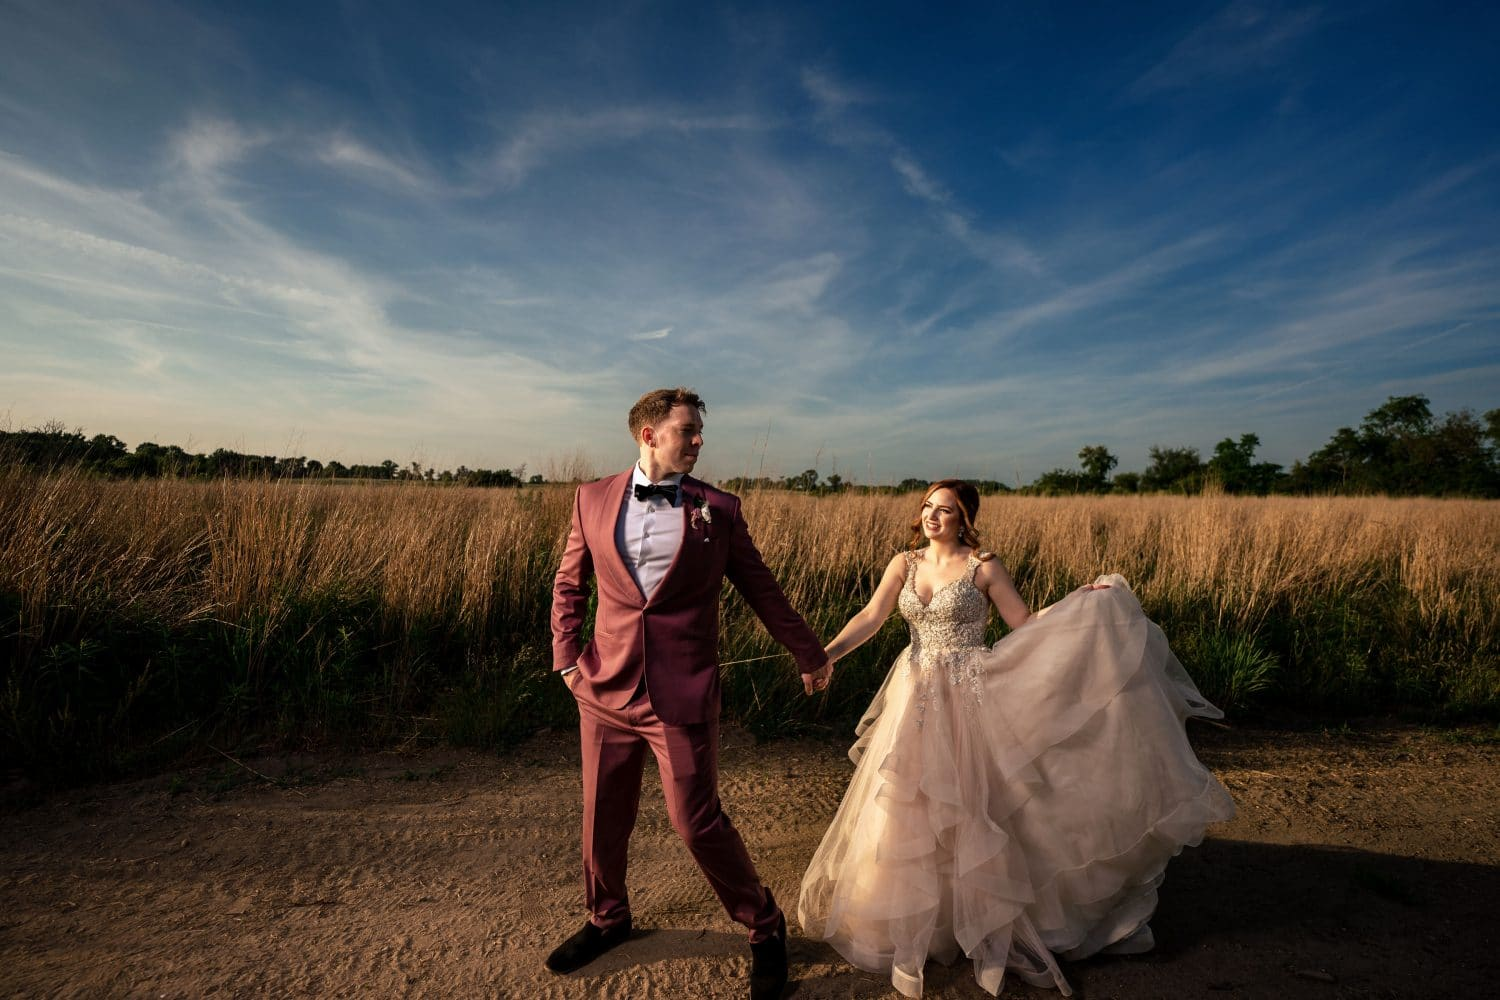 Epic photo of bride and groom on the farm in New Jersey Bishop Farmstead Wedding shot by John Ryan